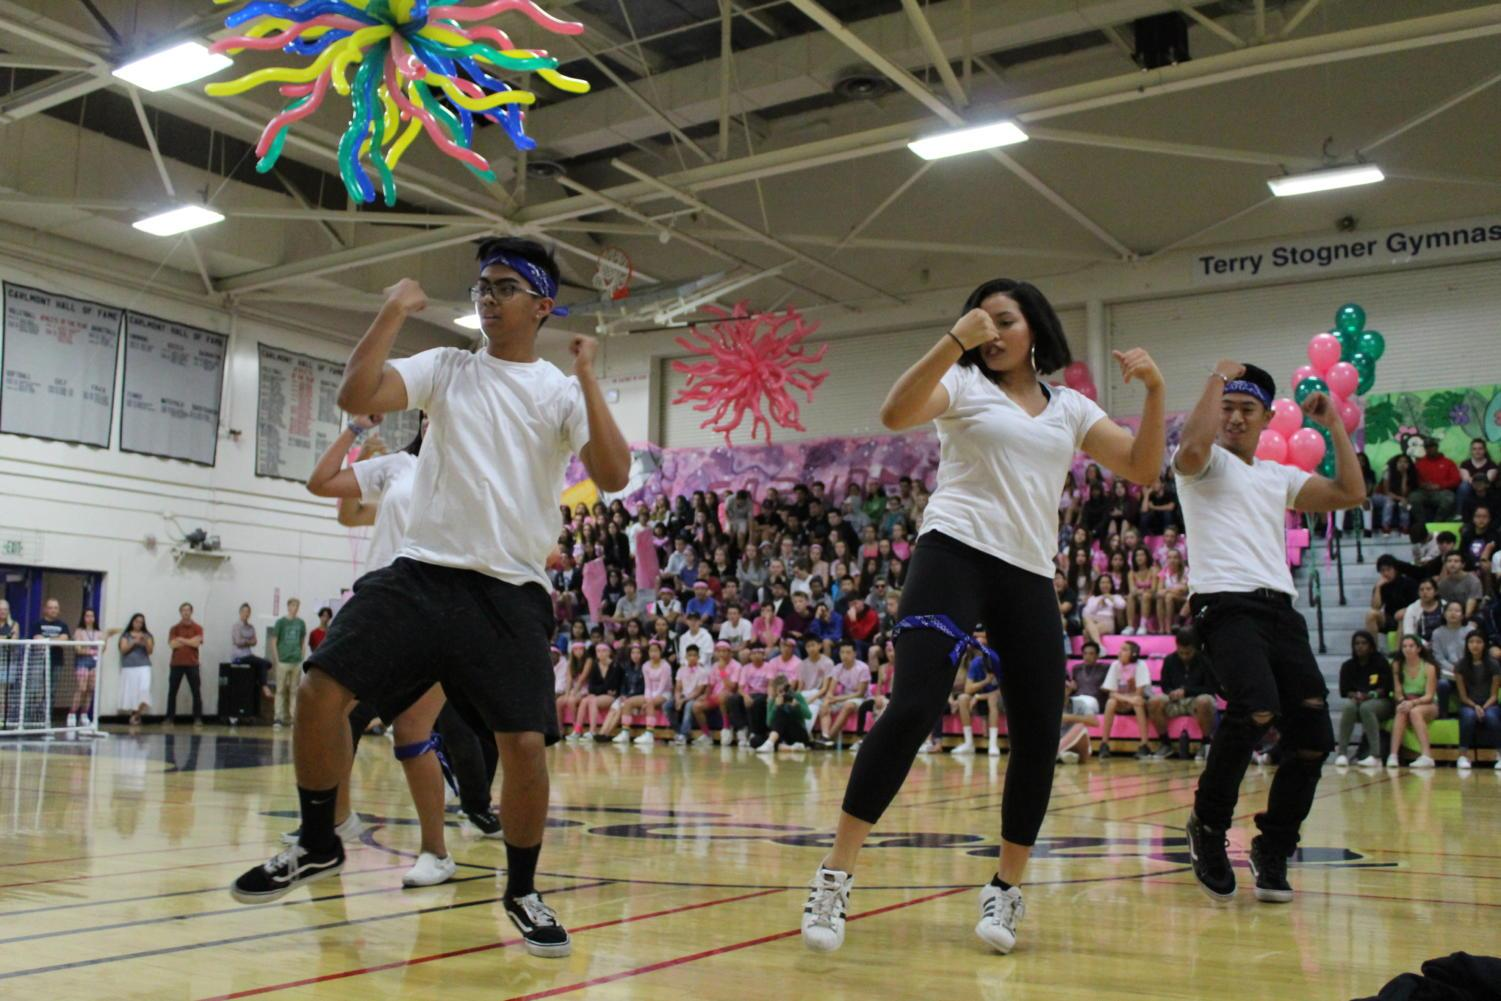 Hip hop club hypes up the audience during their performance